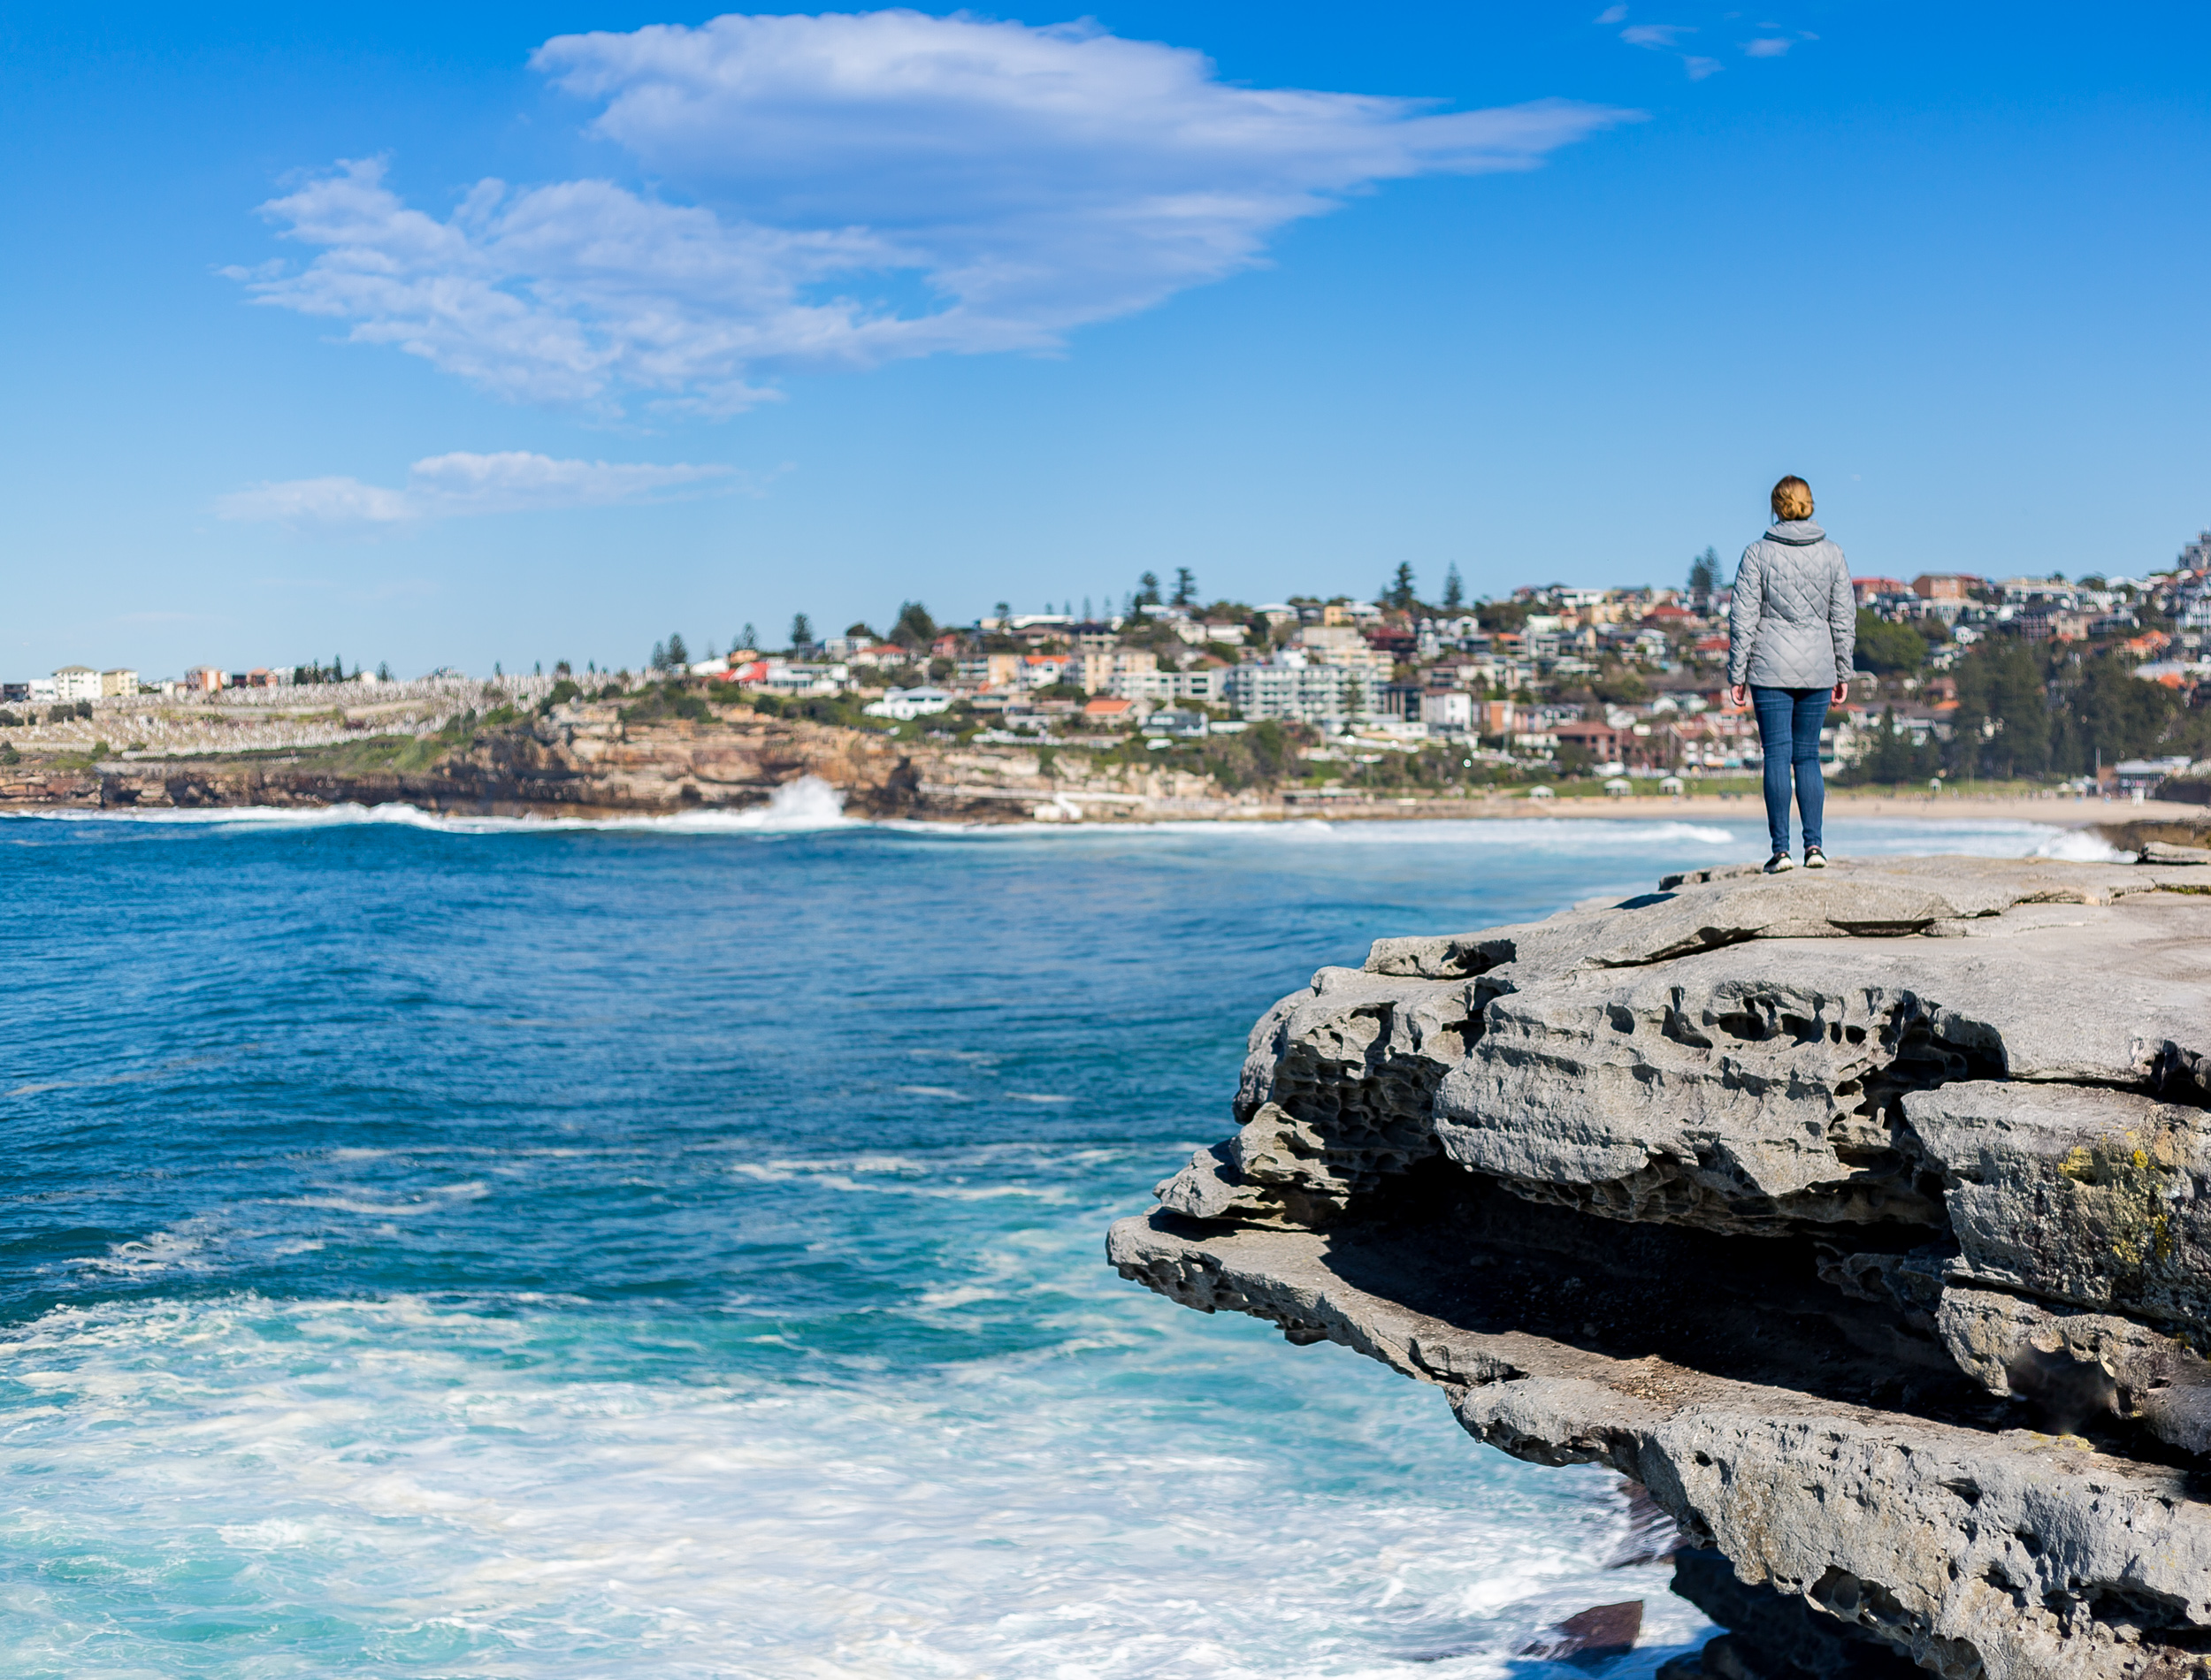 Best things to do in Sydney Bondi: Bondi to Coogee Walk